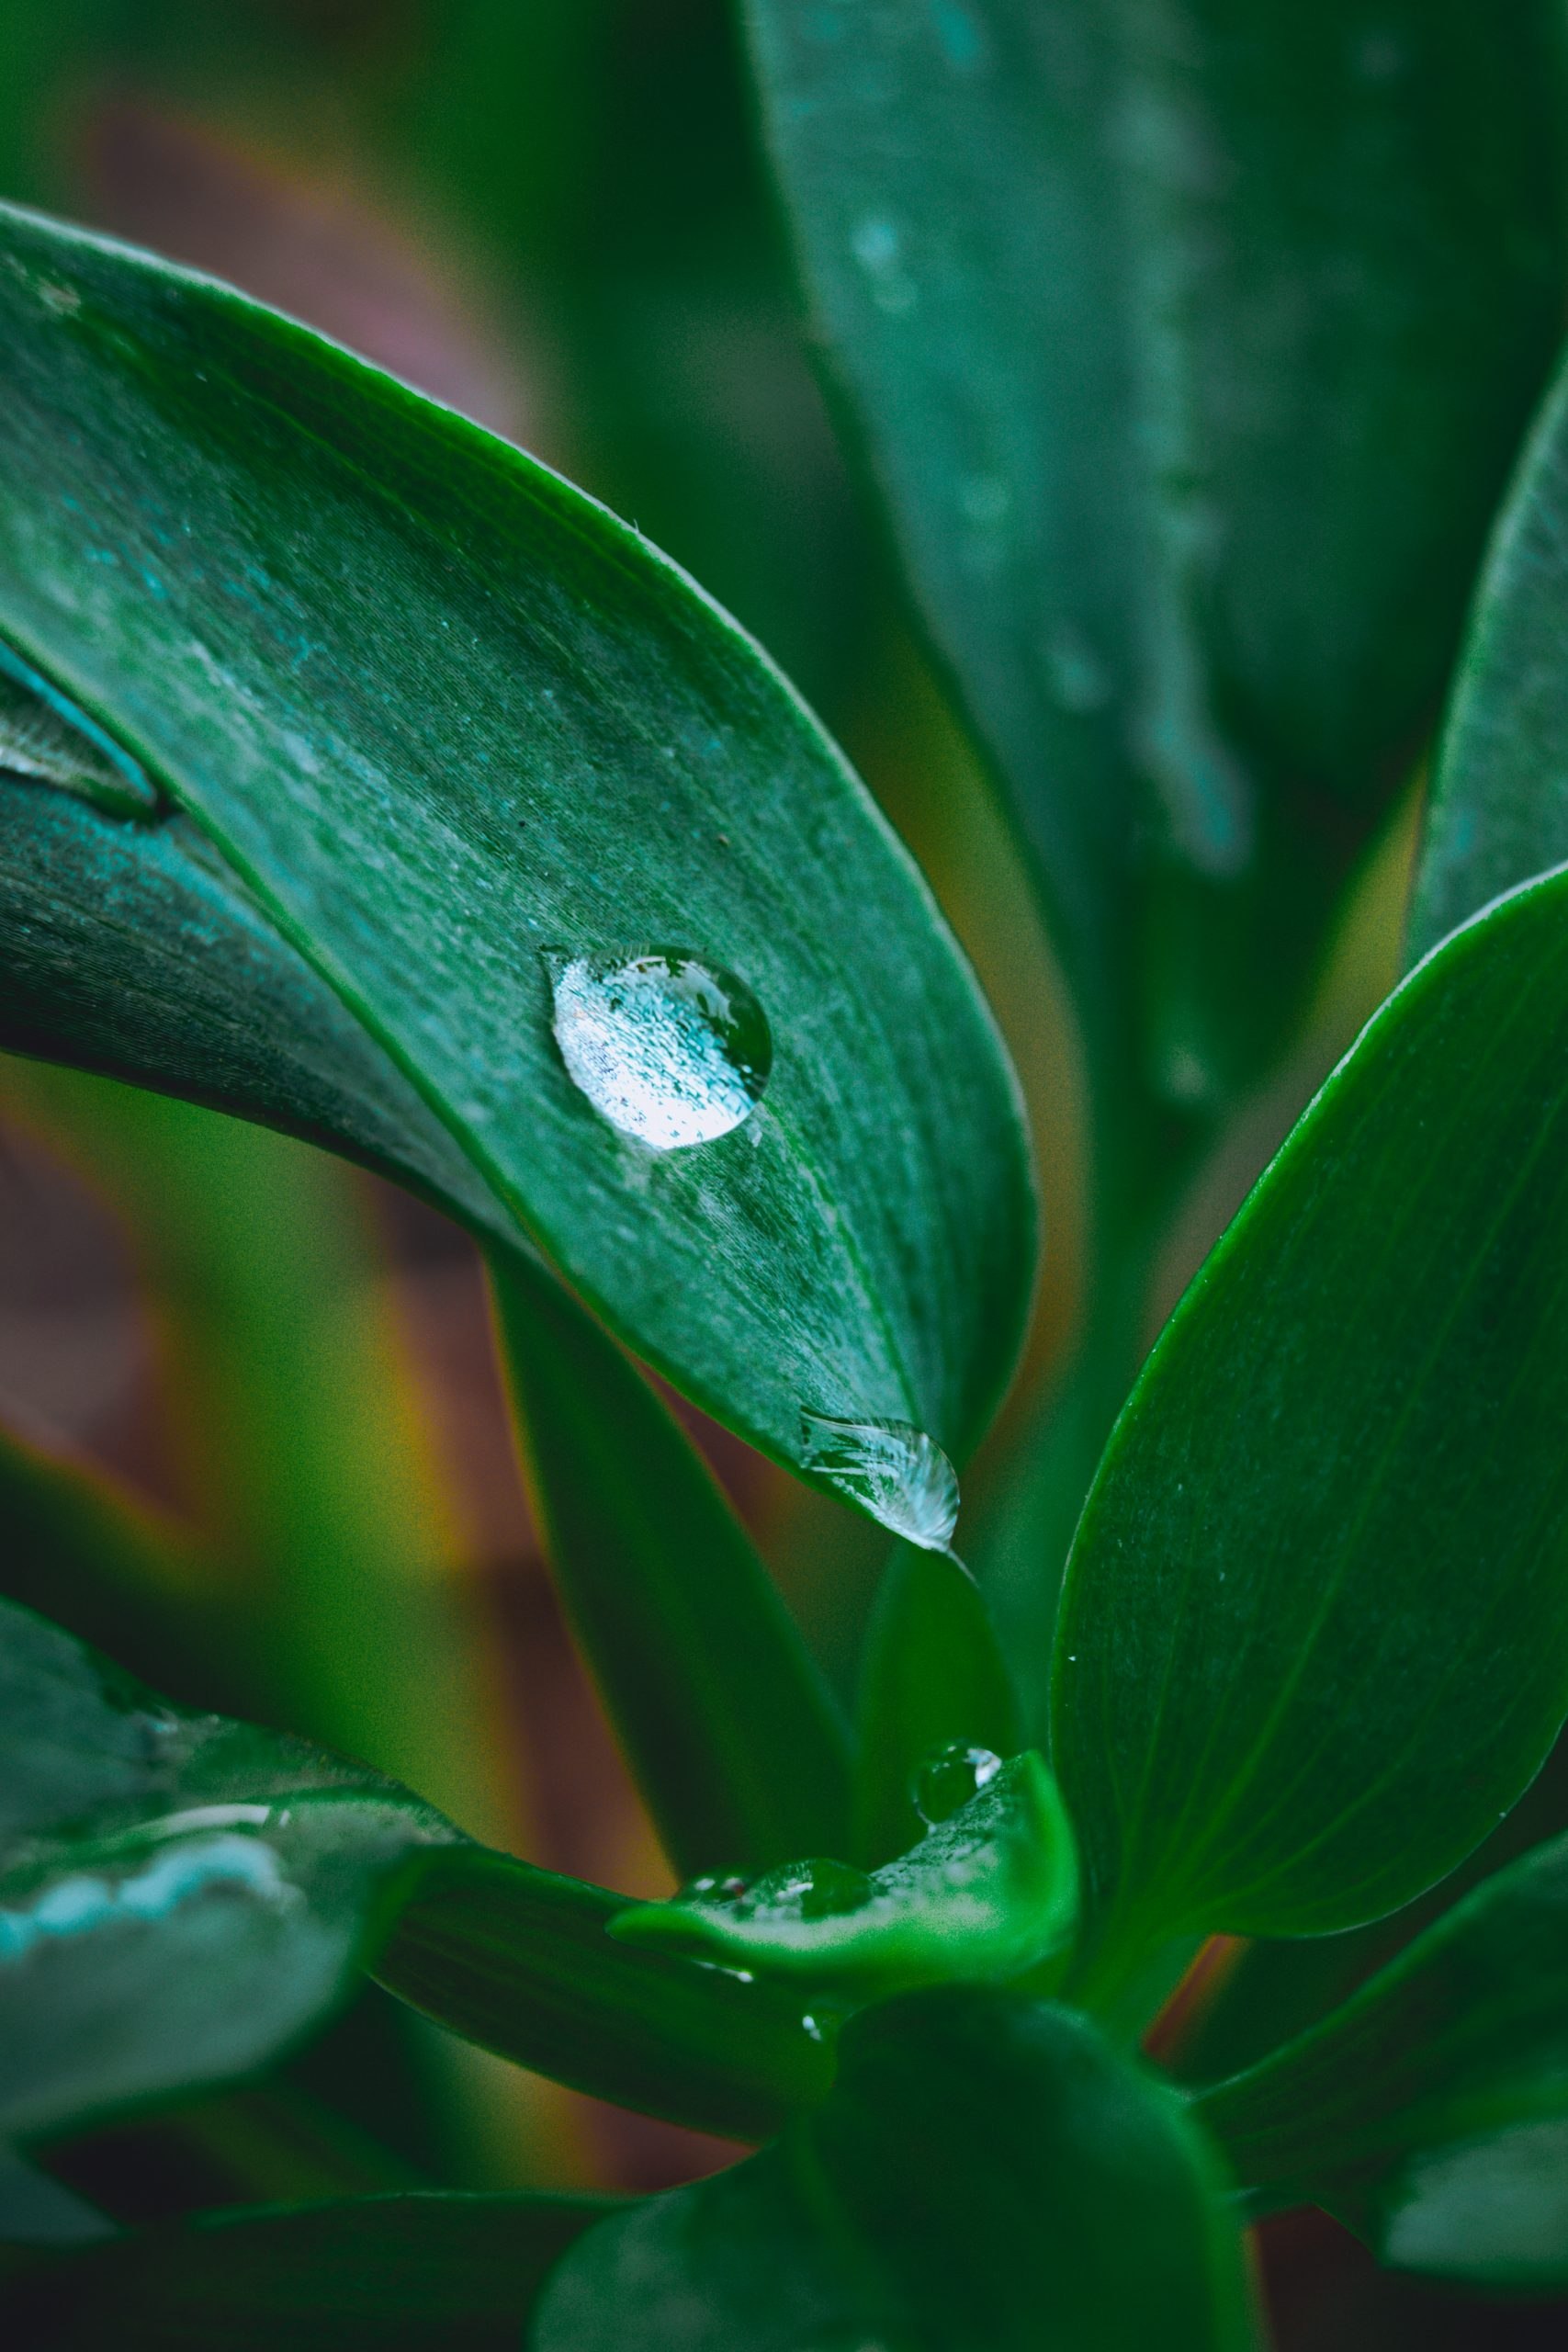 Water drop on the plant leaf